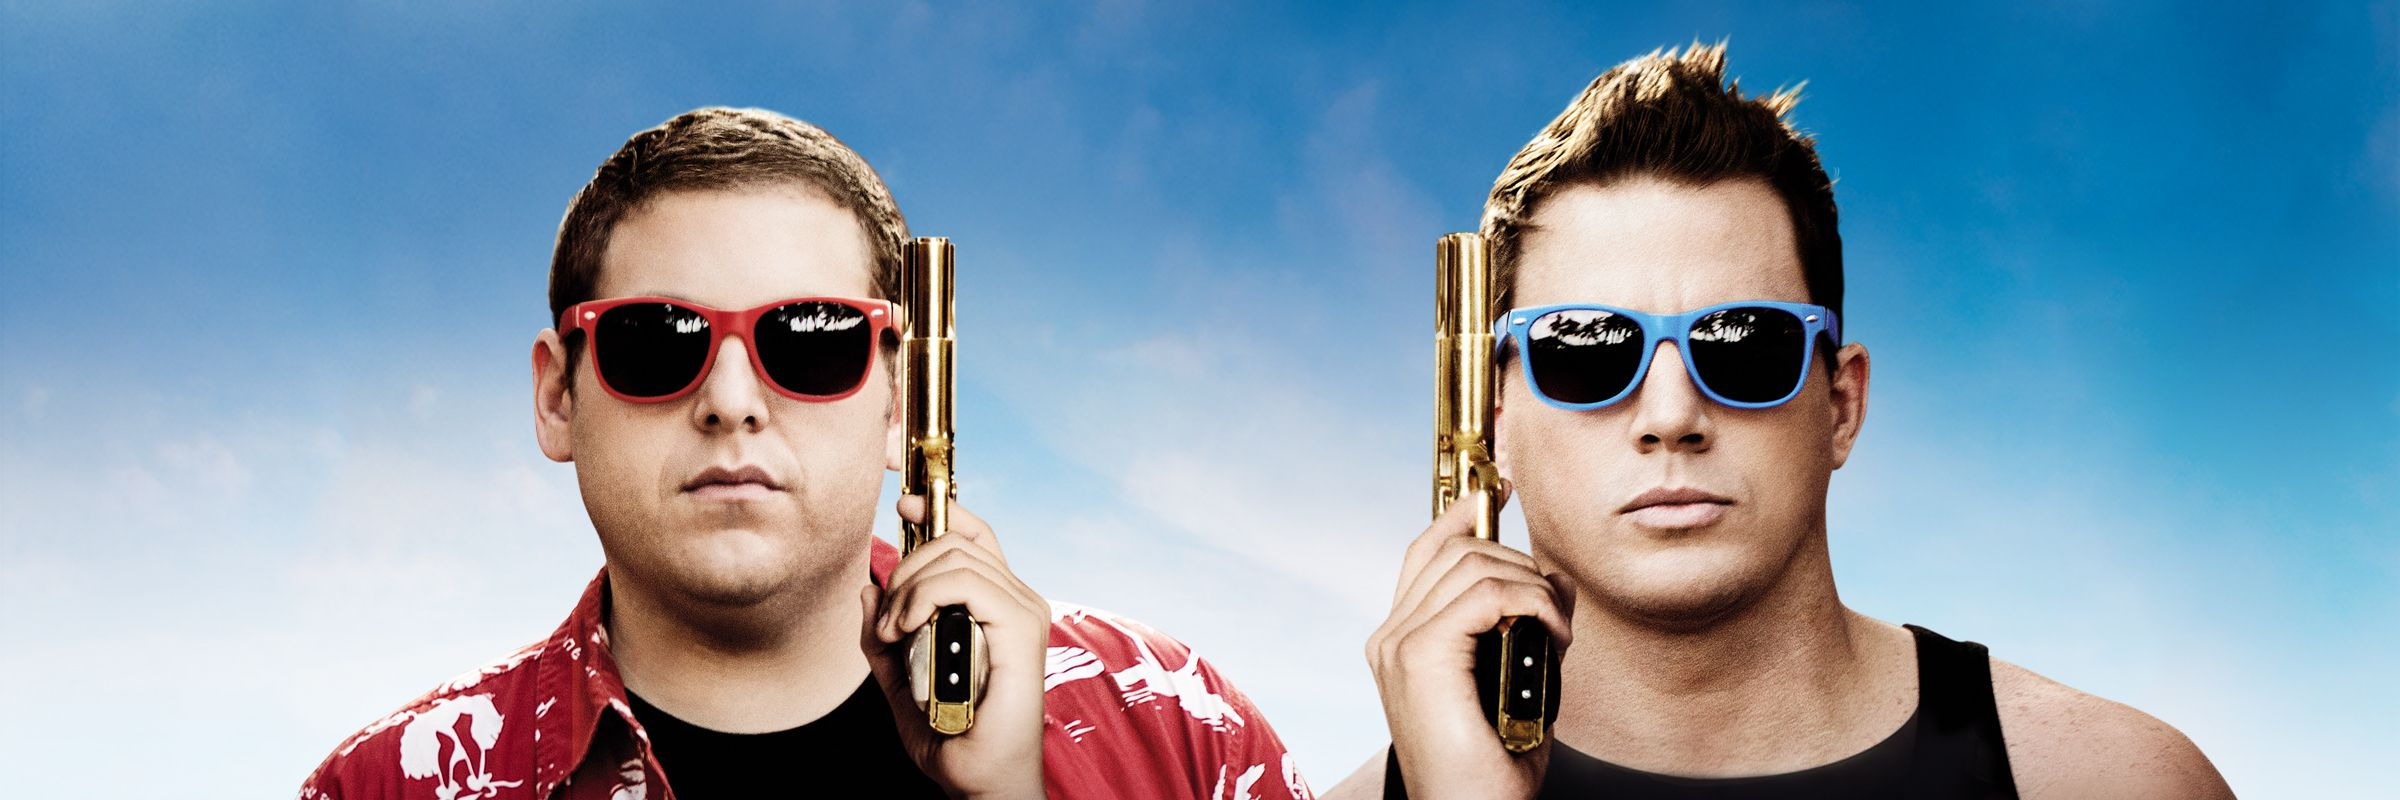 22 Jump Street Full Movie Movies Anywhere